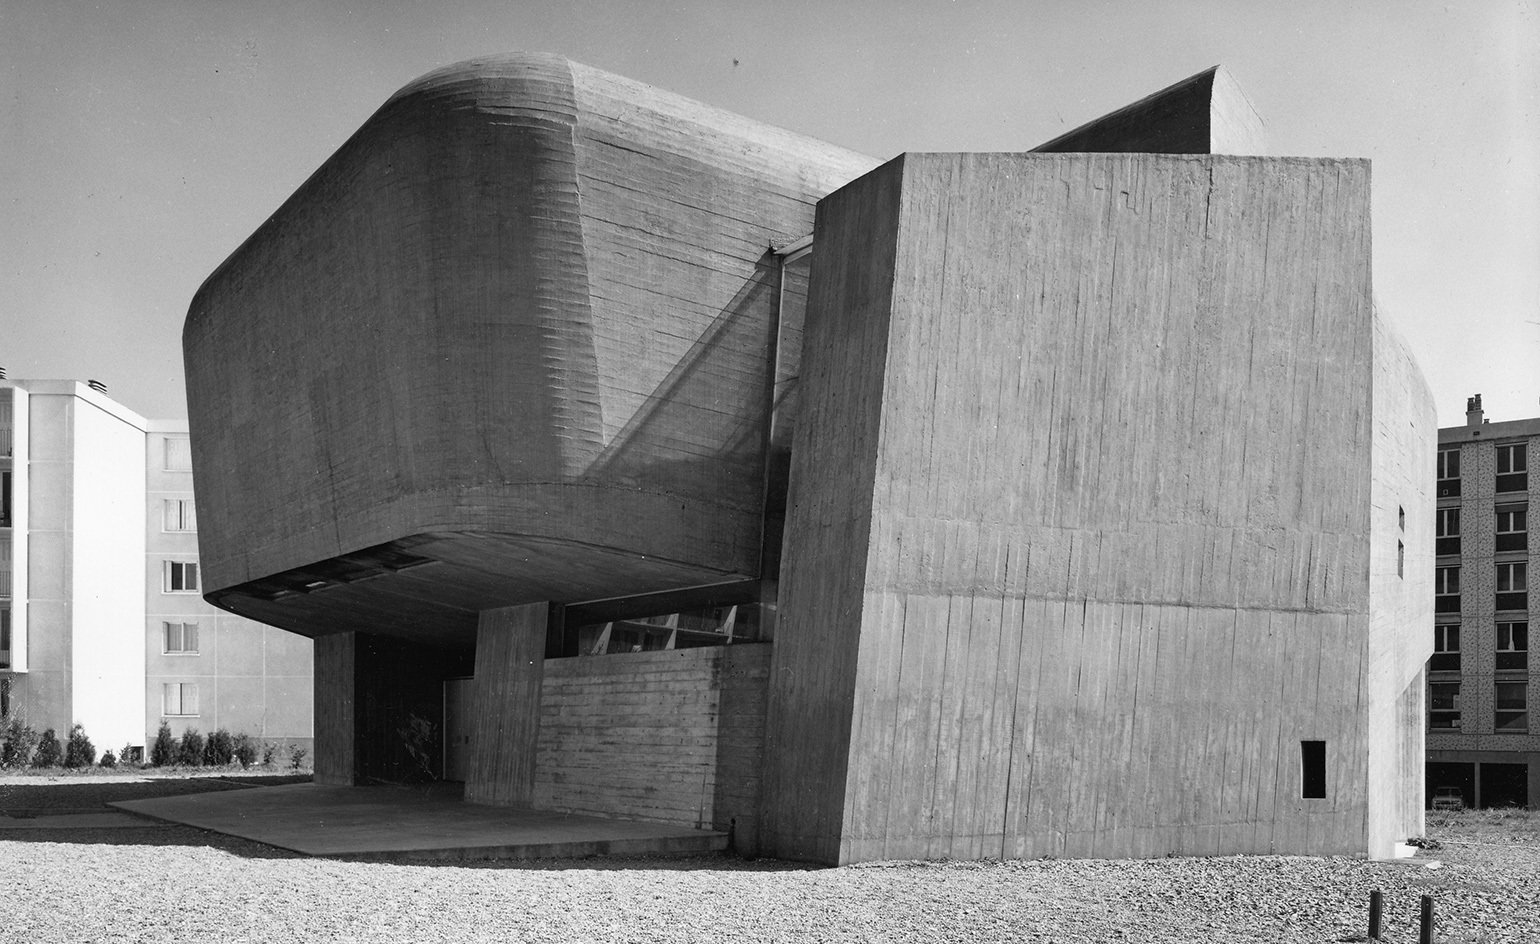 The church of Sainte-Bernadette du Banlay, by Claude Parent and Paul Virilio, an archetypal example of the duo's la fonction oblique. Photography: DACS 2016/Gilles Ehrmann, SIAF/Cité de l'Architecture et du Patrimoine/Collection FRAC Centre – Val de Loire  buildings by pulltab